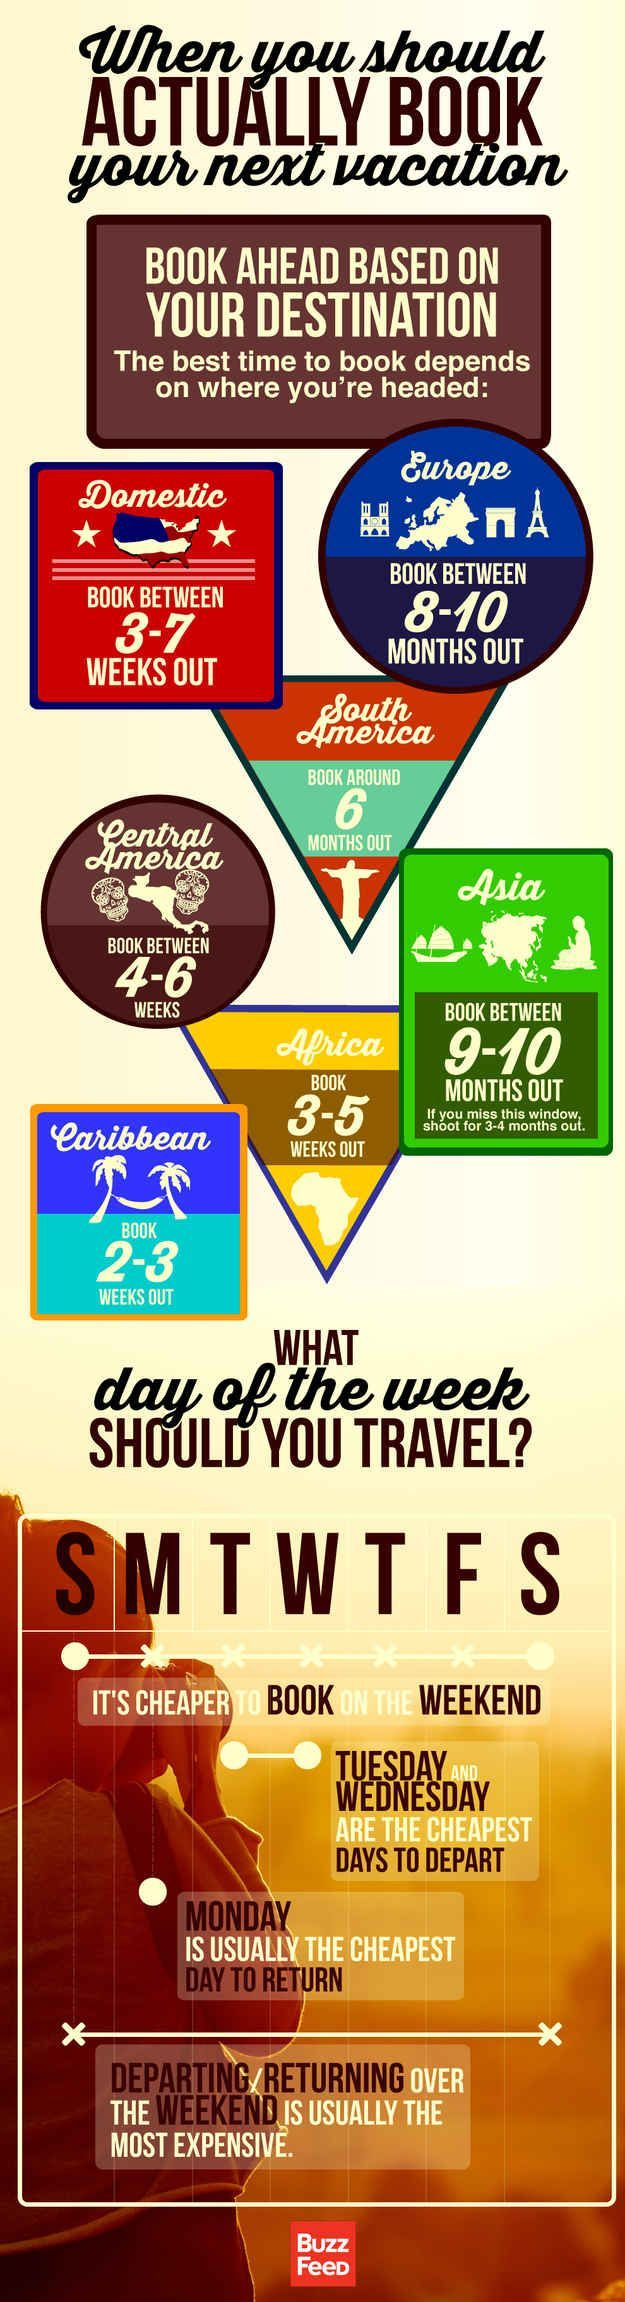 Love these tips! #travel